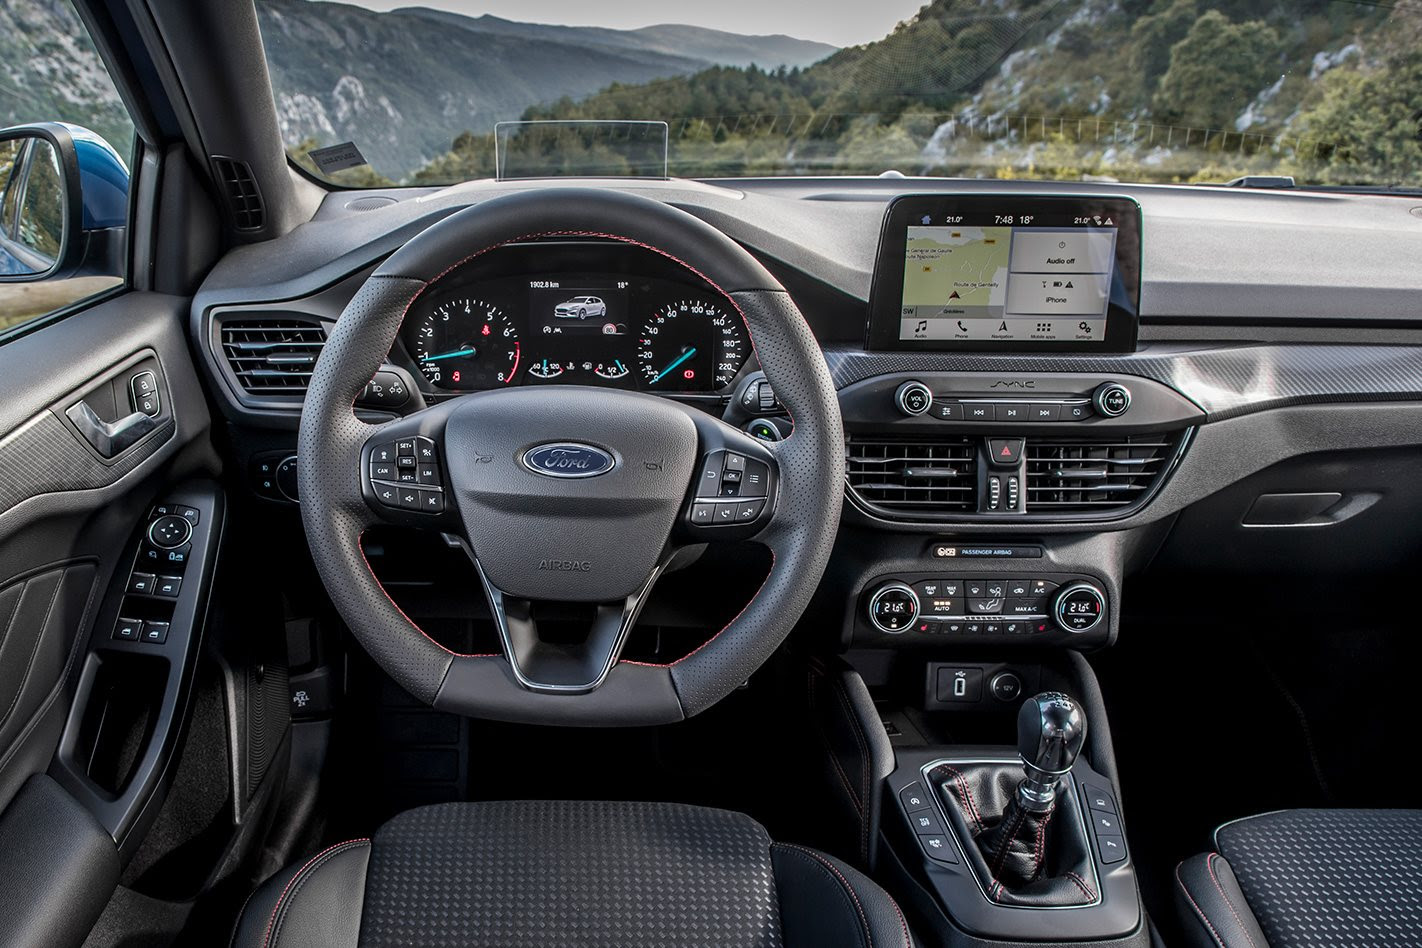 2019 Ford Focus ST-Line interior